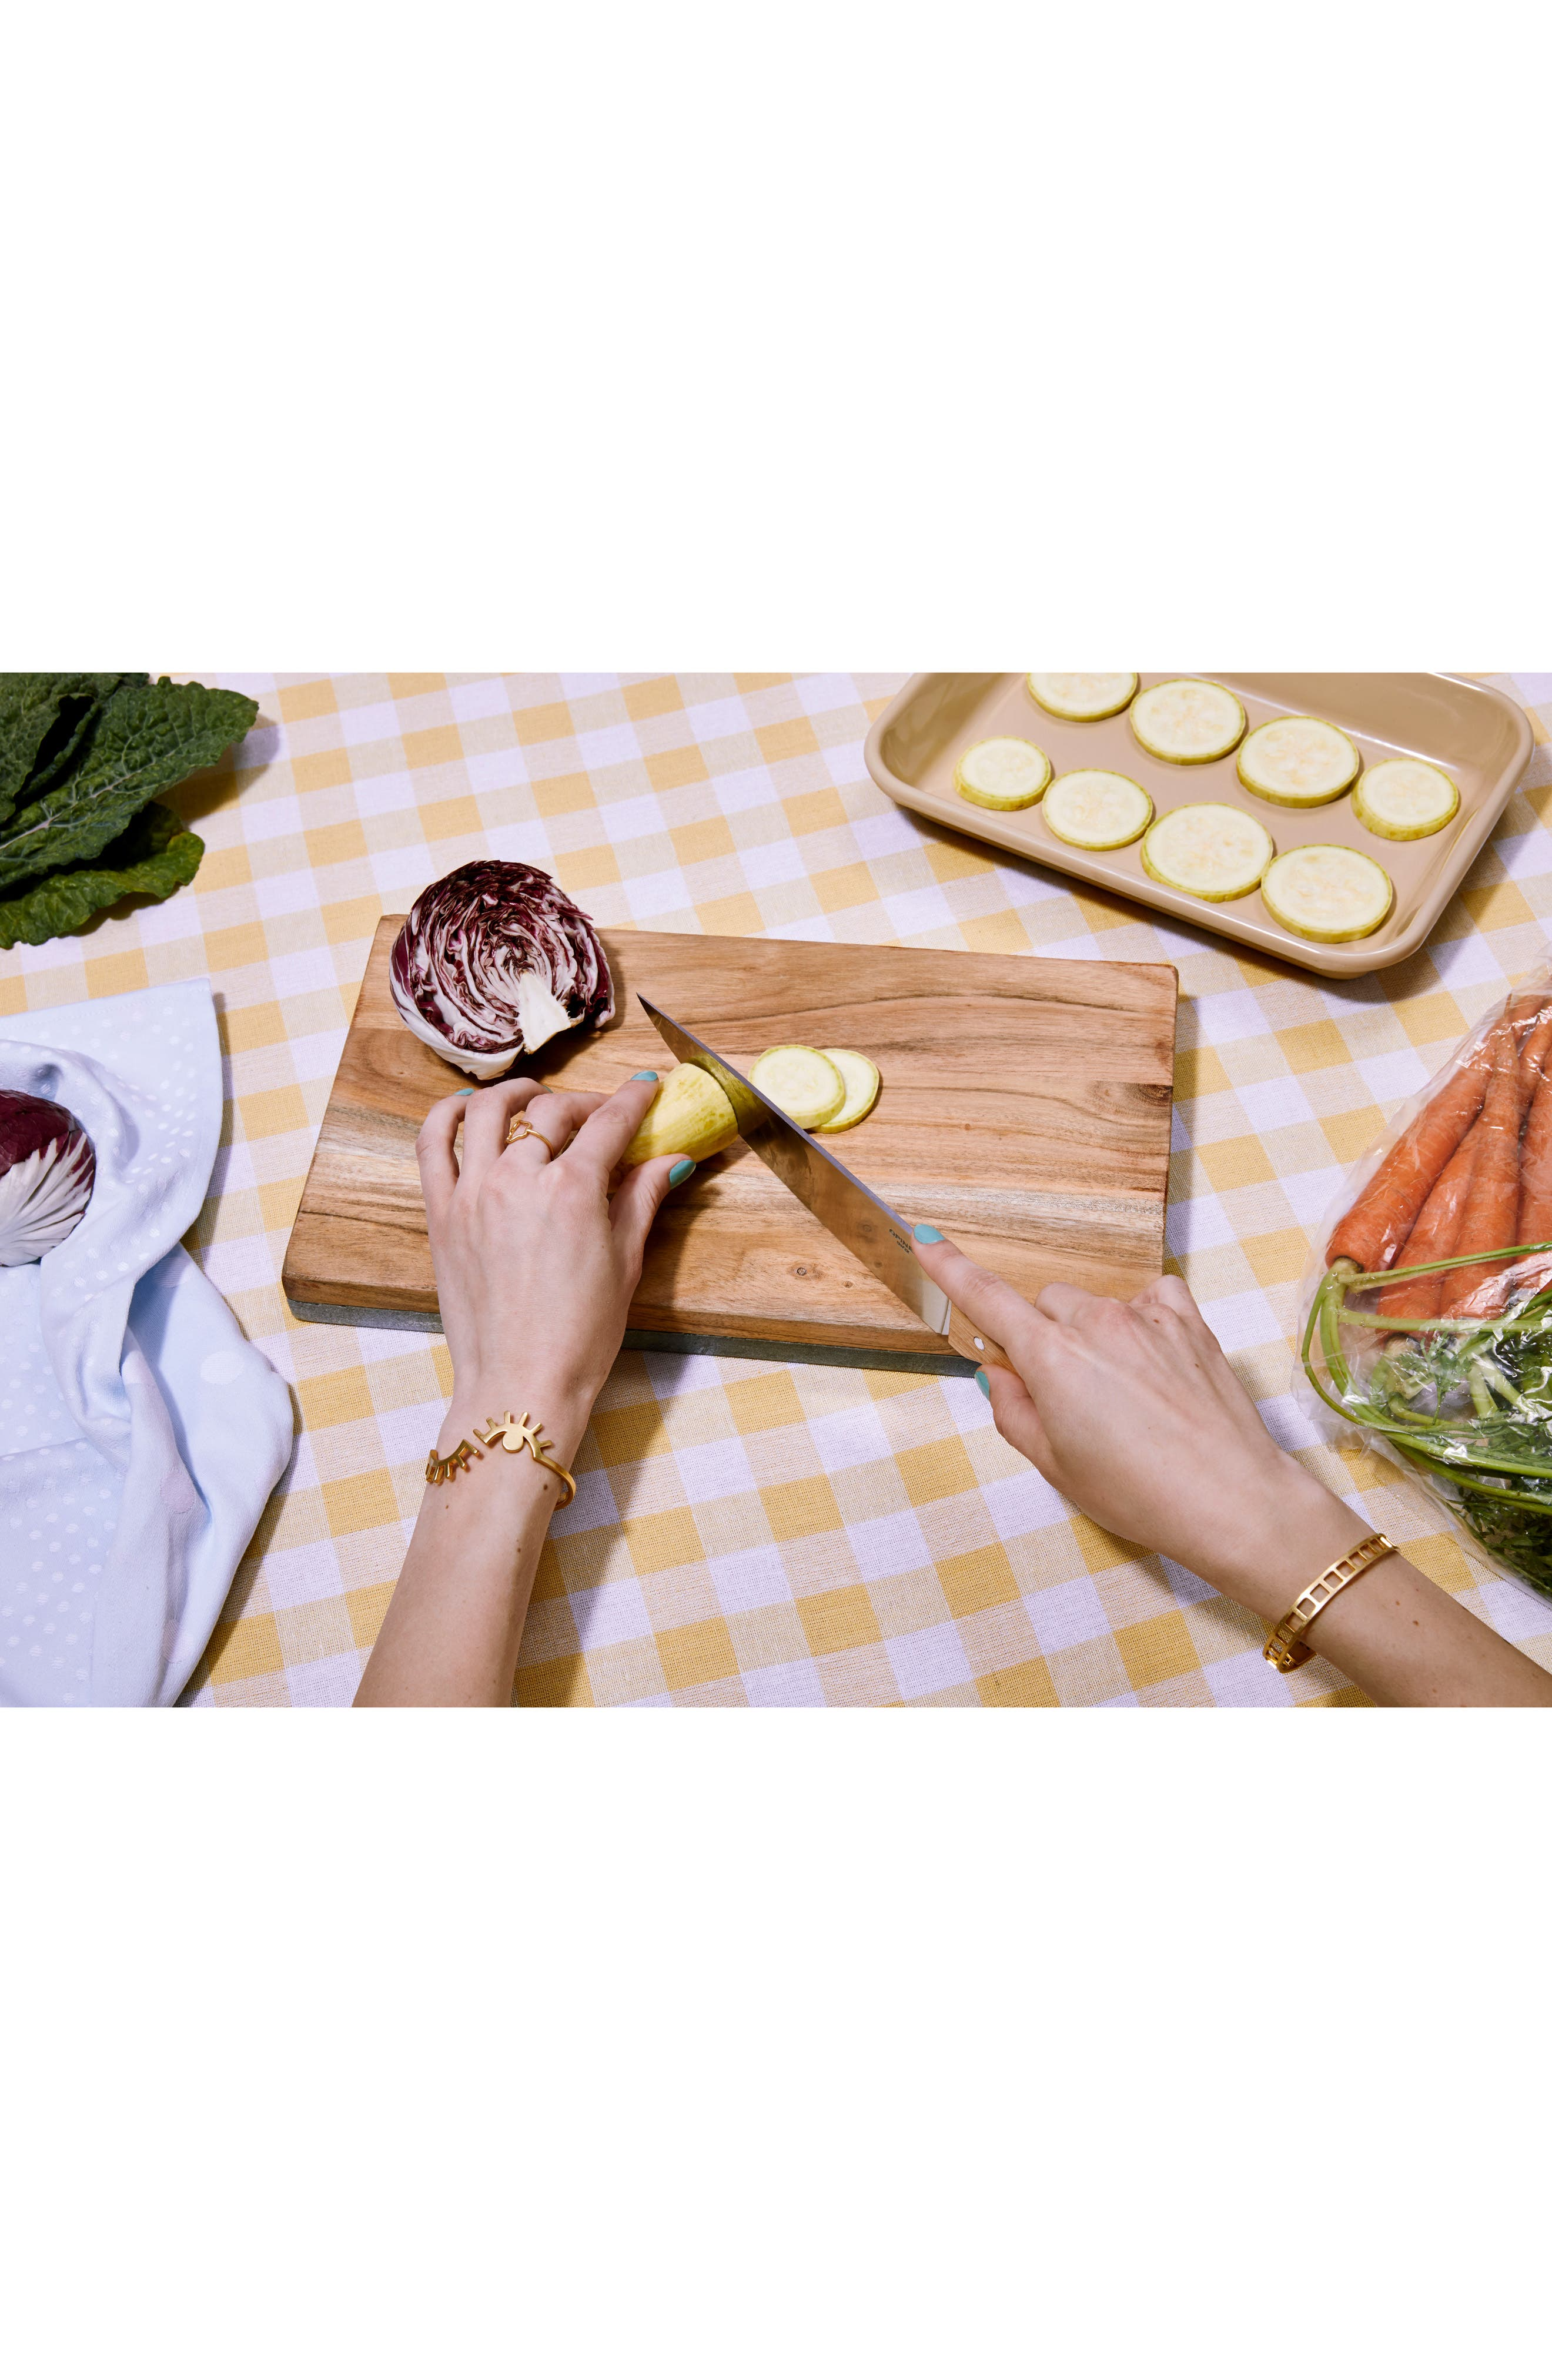 Blue Marble & Mango Wood Reversible Serving Board,                             Alternate thumbnail 4, color,                             200